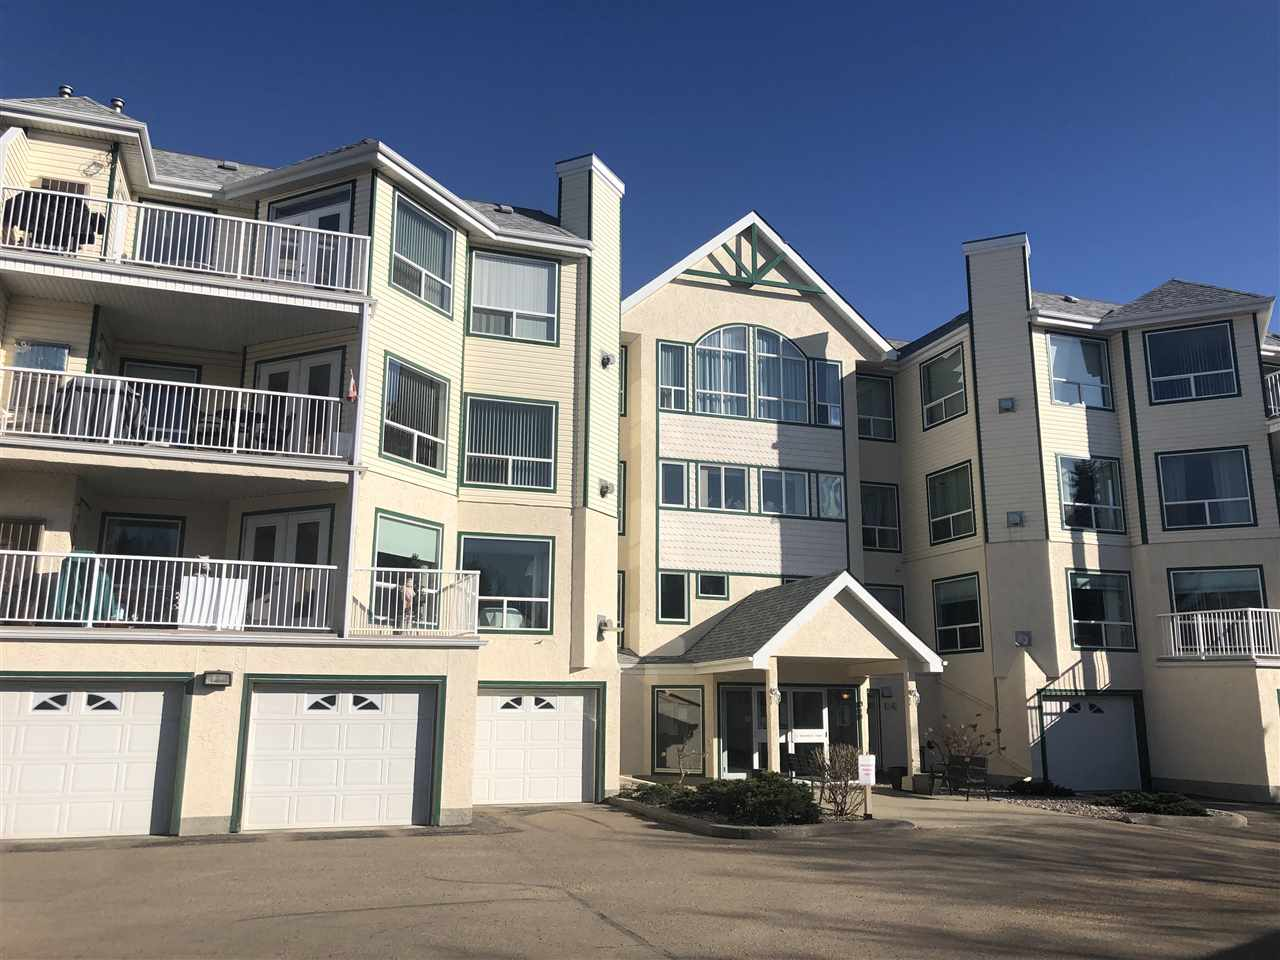 Prime Central St. Albert Location! Steps to the Sturgeon River Valley trails, public transportation and walk-able shopping to groceries, the mall & the Shops of Boudreau! This top floor unit is bright and homey feeling and features 2 Bedrooms & 2 Full Bathrooms & 2 Parking Spaces! The spacious entrance is adjacent to the in-suite laundry & storage room, and updated white kitchen. The galley style kitchen features new corian countertops, additional pantry storage, and cabinet hardware. The central dining space and living room feature large windows w/ new window coverings, gas fireplace and access to your private deck. The spacious master bedroom features dual walk-through closets, and a roomy 3 piece ensuite. The 2nd bedroom also has its own 4 piece ensuite! This unit also features an oversized single detached garage and a powered outdoor stall. Professionally managed condo w/ a guest suite & fitness room! All the comforts of a single family home but with no maintenance!